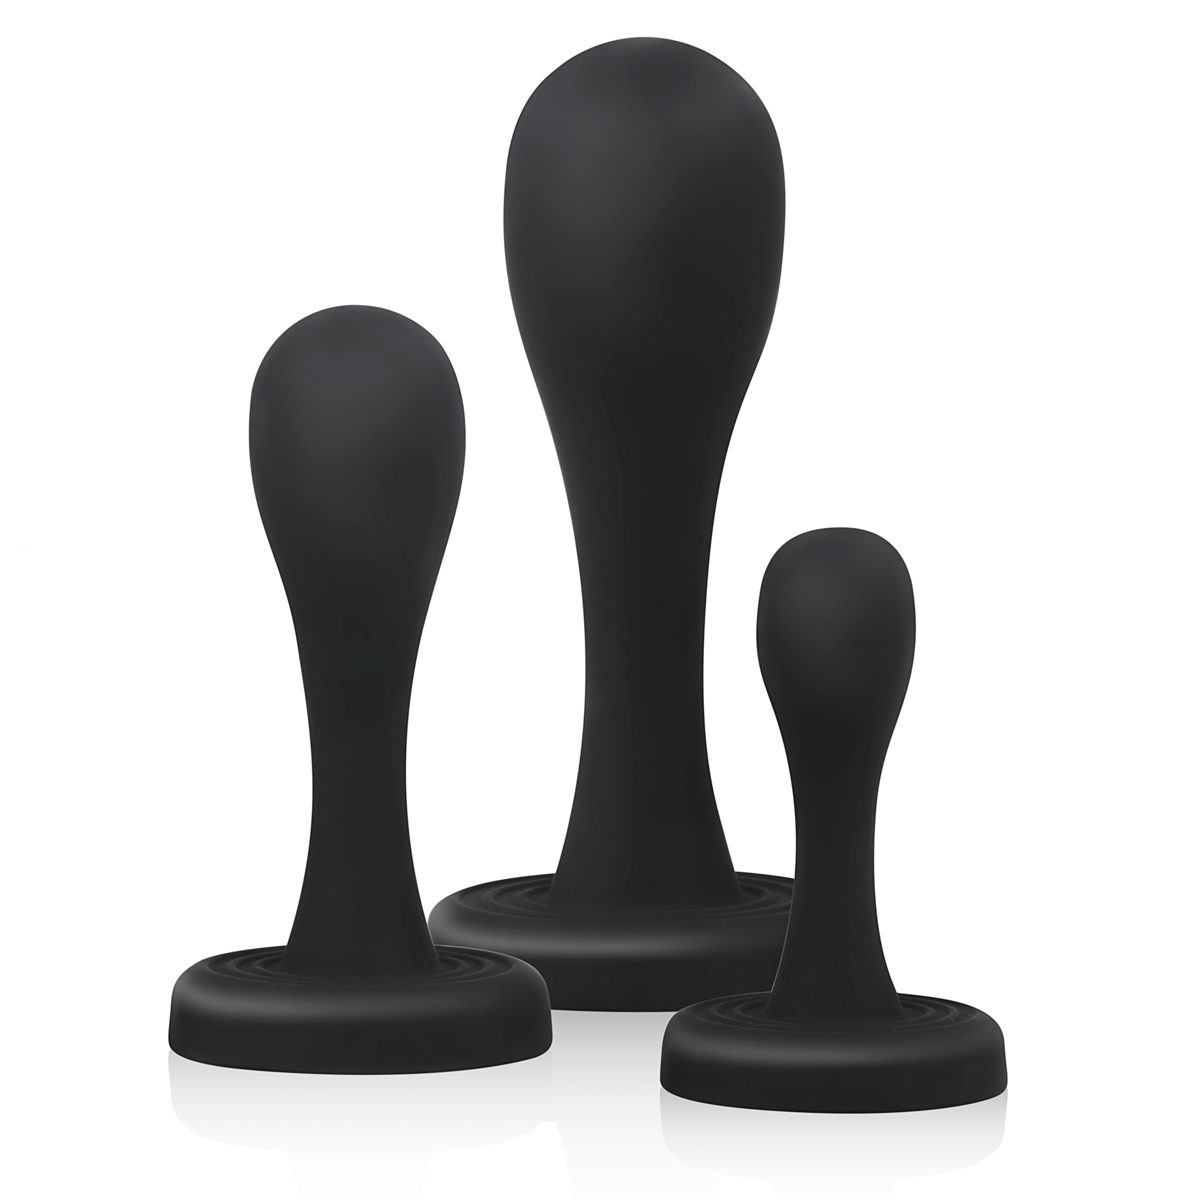 ButtKickers Butt Plug Training Set | Brands, BUTTR, SEXLEKSAKER, ANALT - UNISEX, Analleksaker i set, Analpluggar | Intimast.se - Sexleksaker